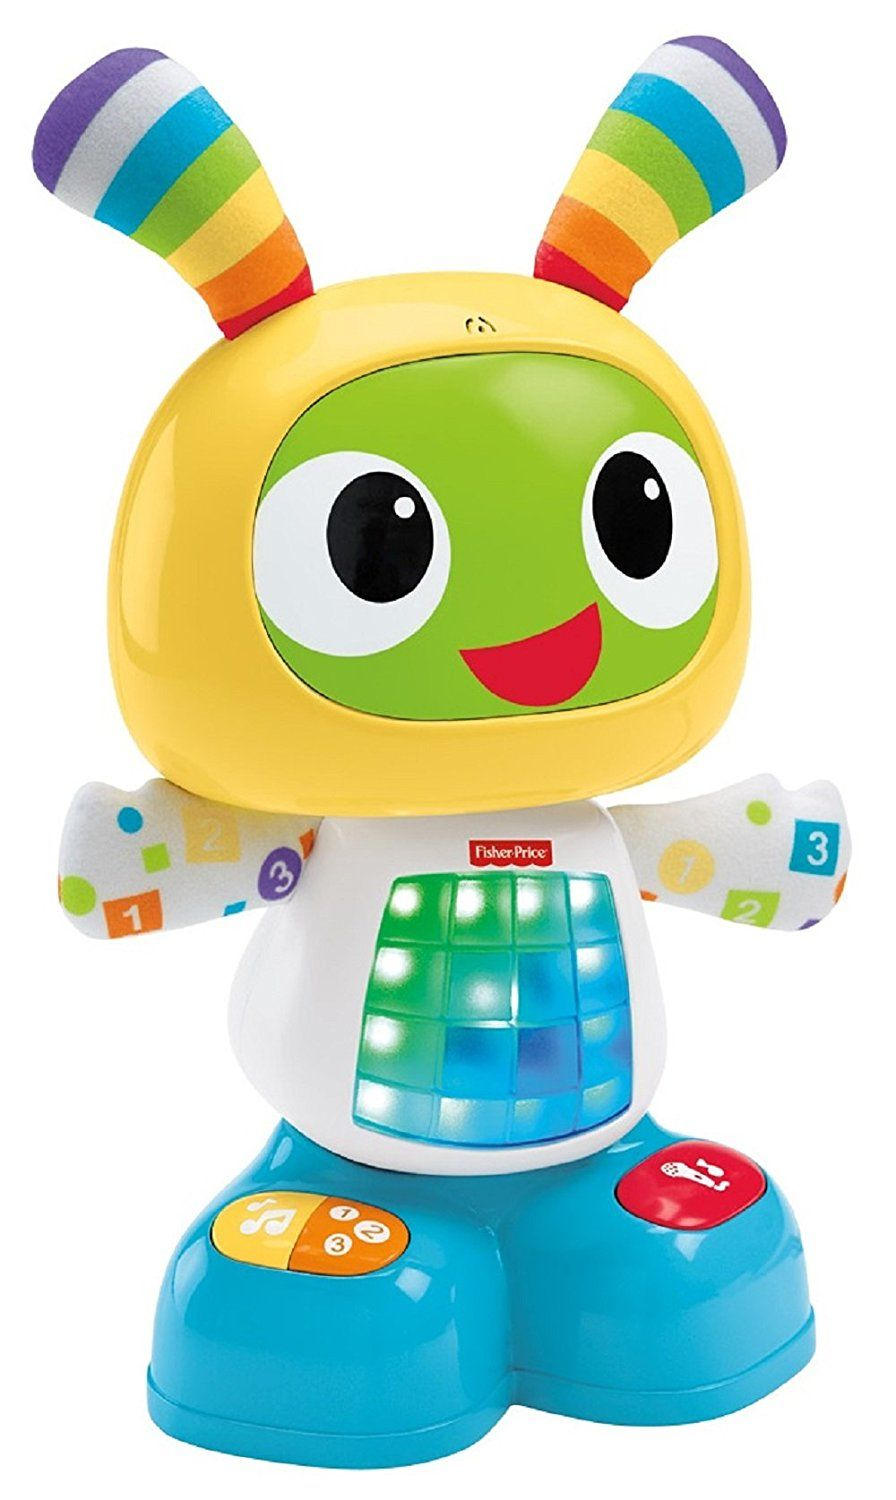 The Best Toys for 2YearOlds Juguetes para niñas